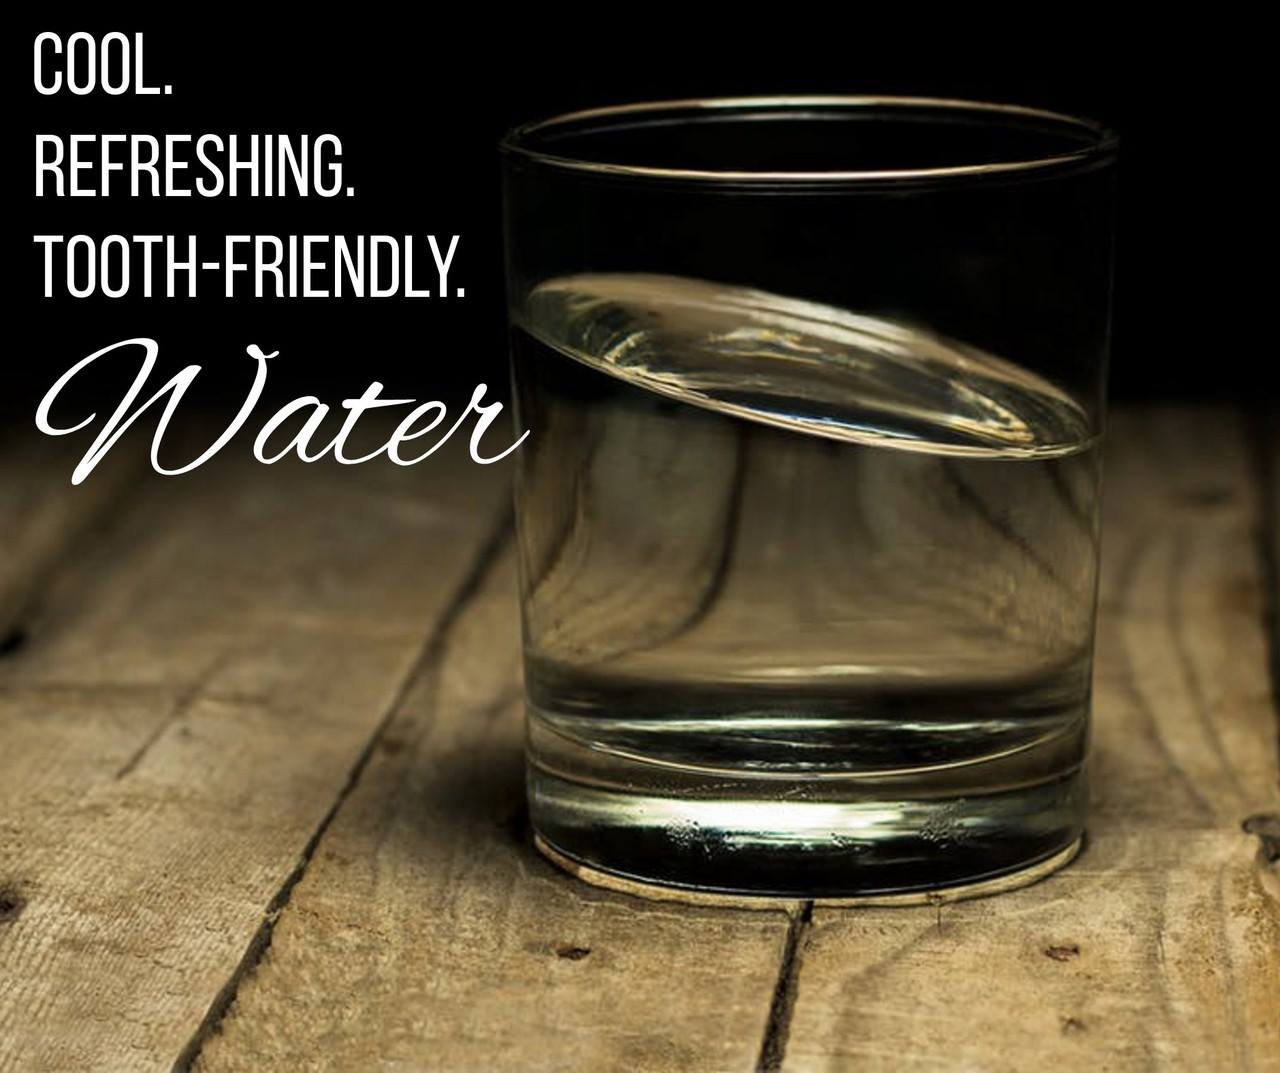 Water: cool, refreshing, tooth-friendly